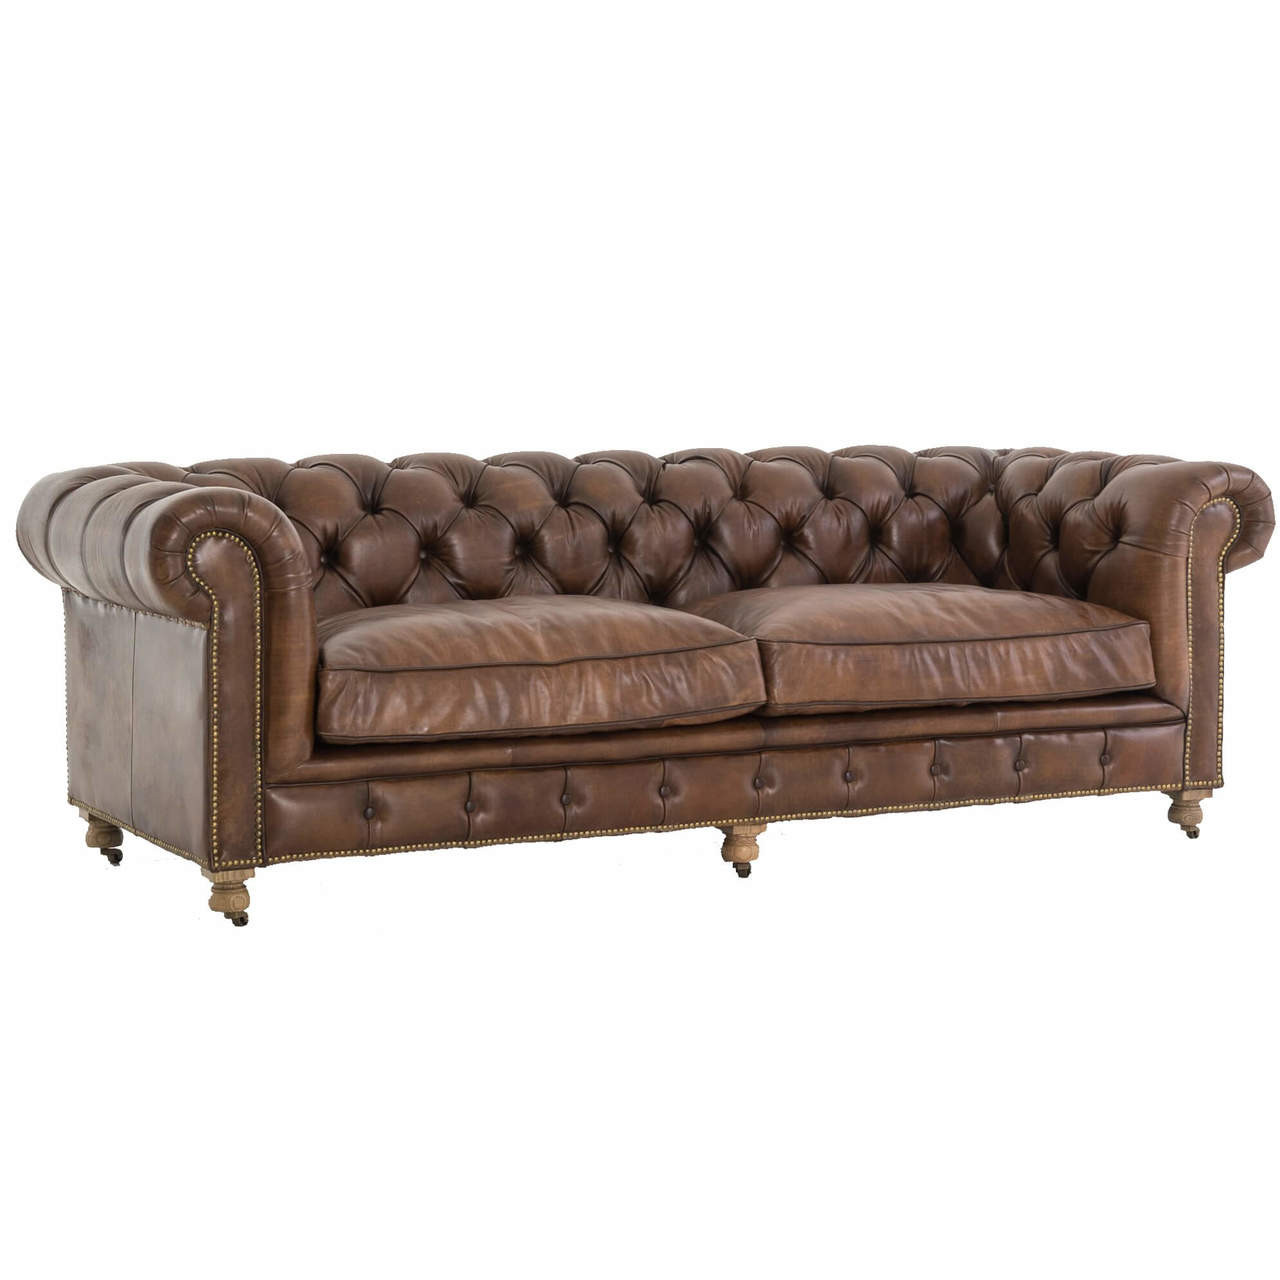 tindall 96 leather sofa throw covers for sectional sofas conrad vintage england coffee chesterfield